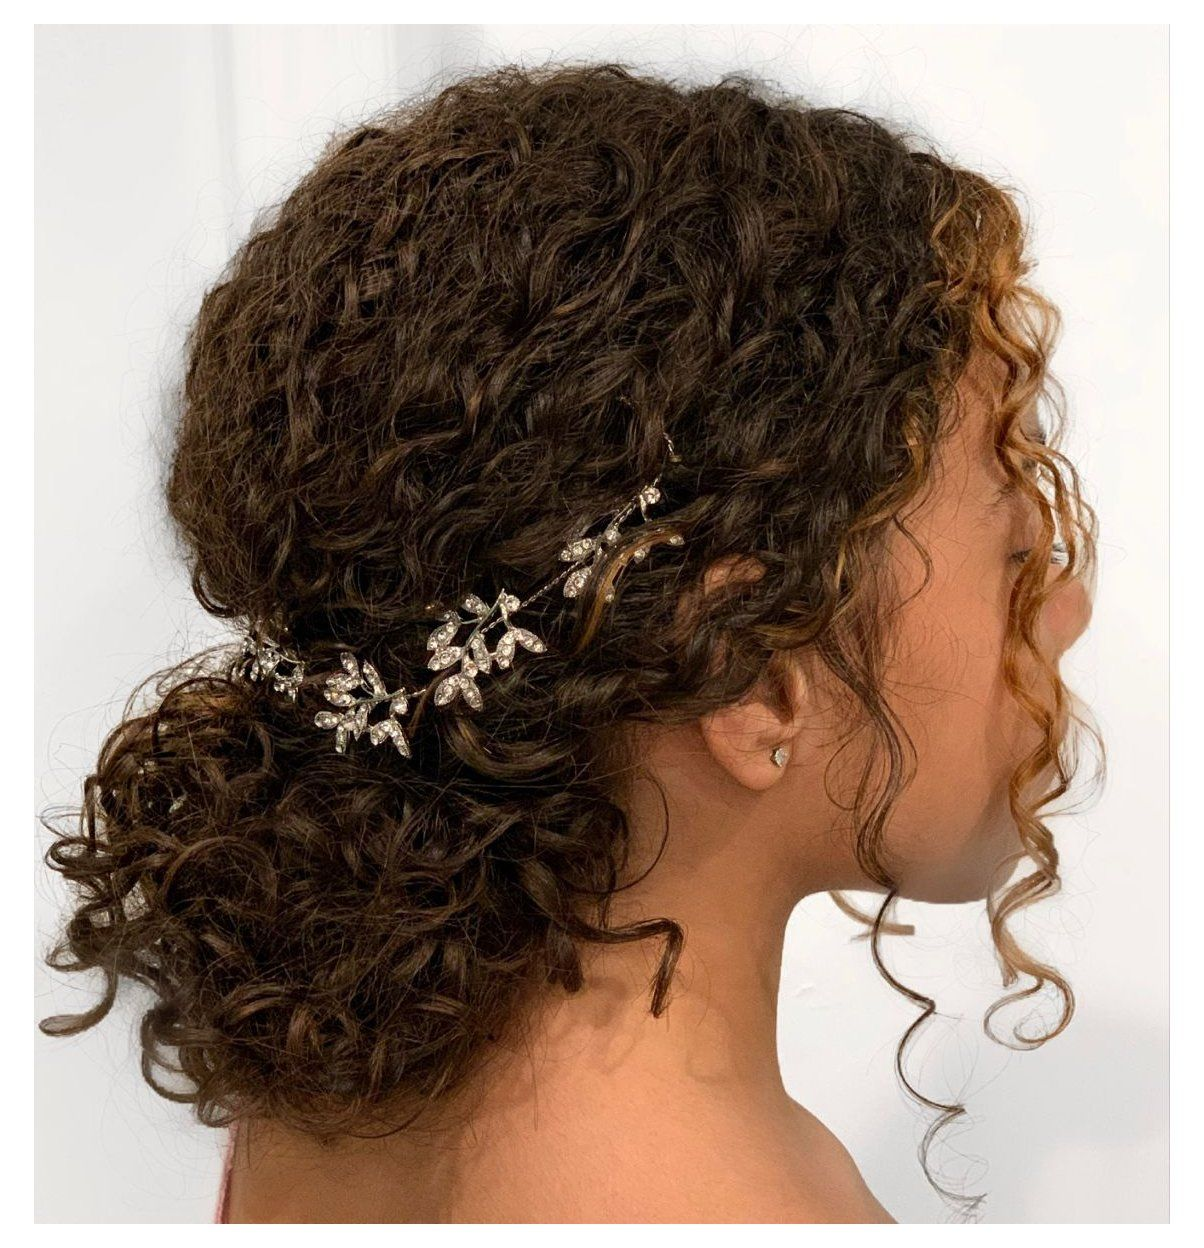 prom hairstyles for curly hair - MyFashionGoals